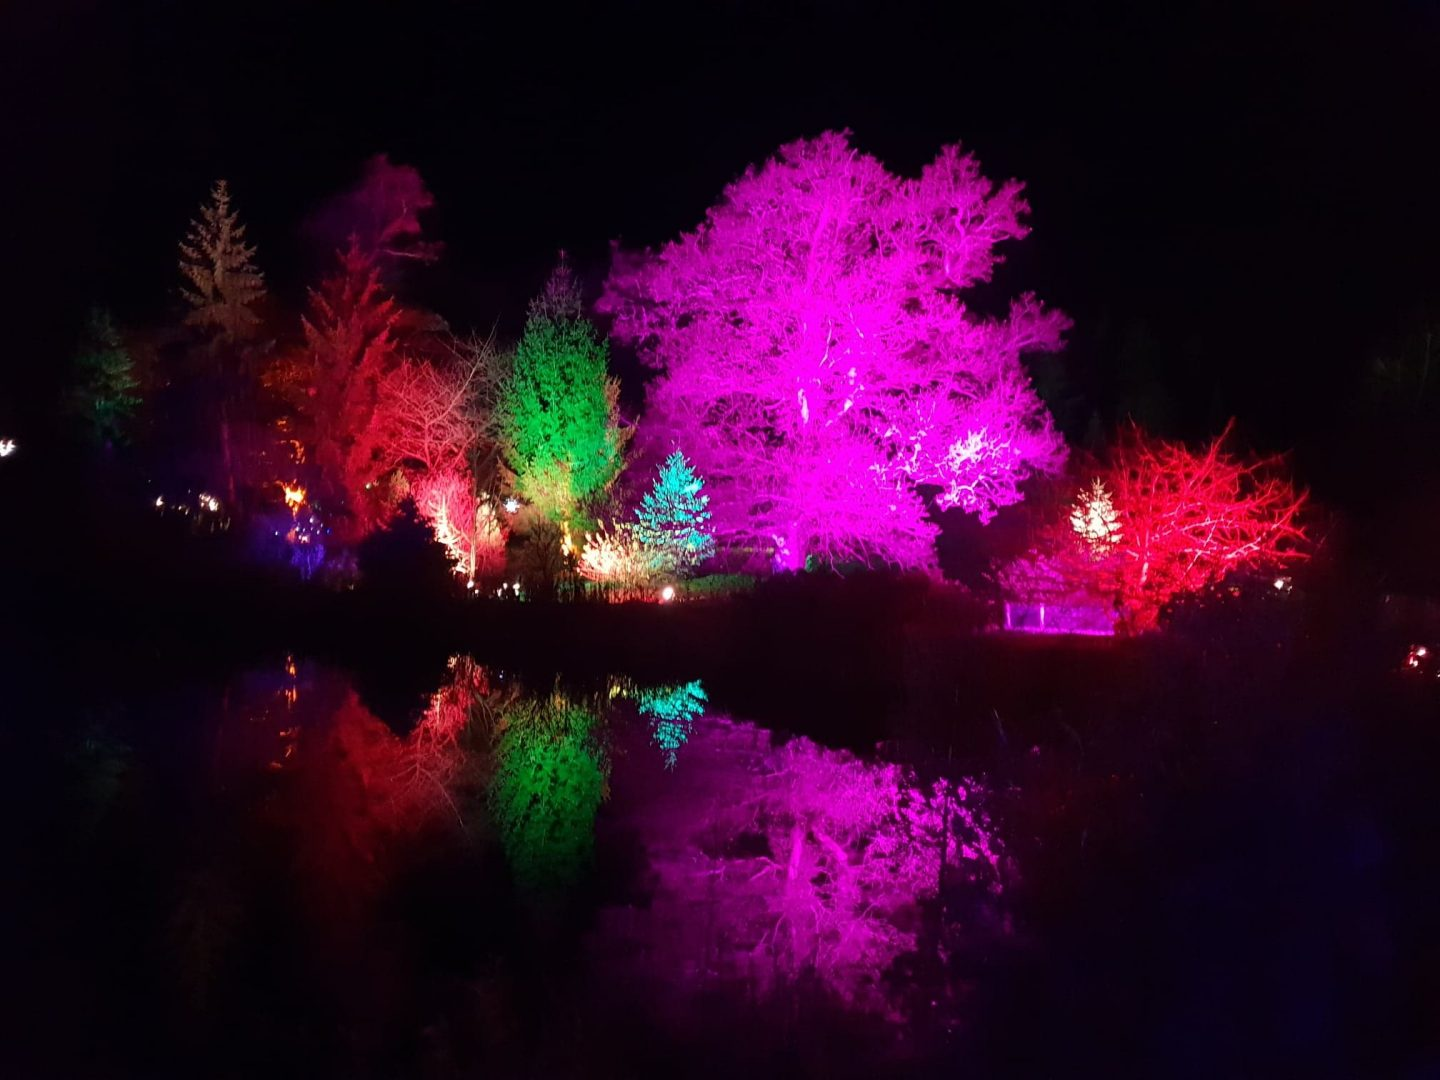 Lights at Bedgebury Pinetum